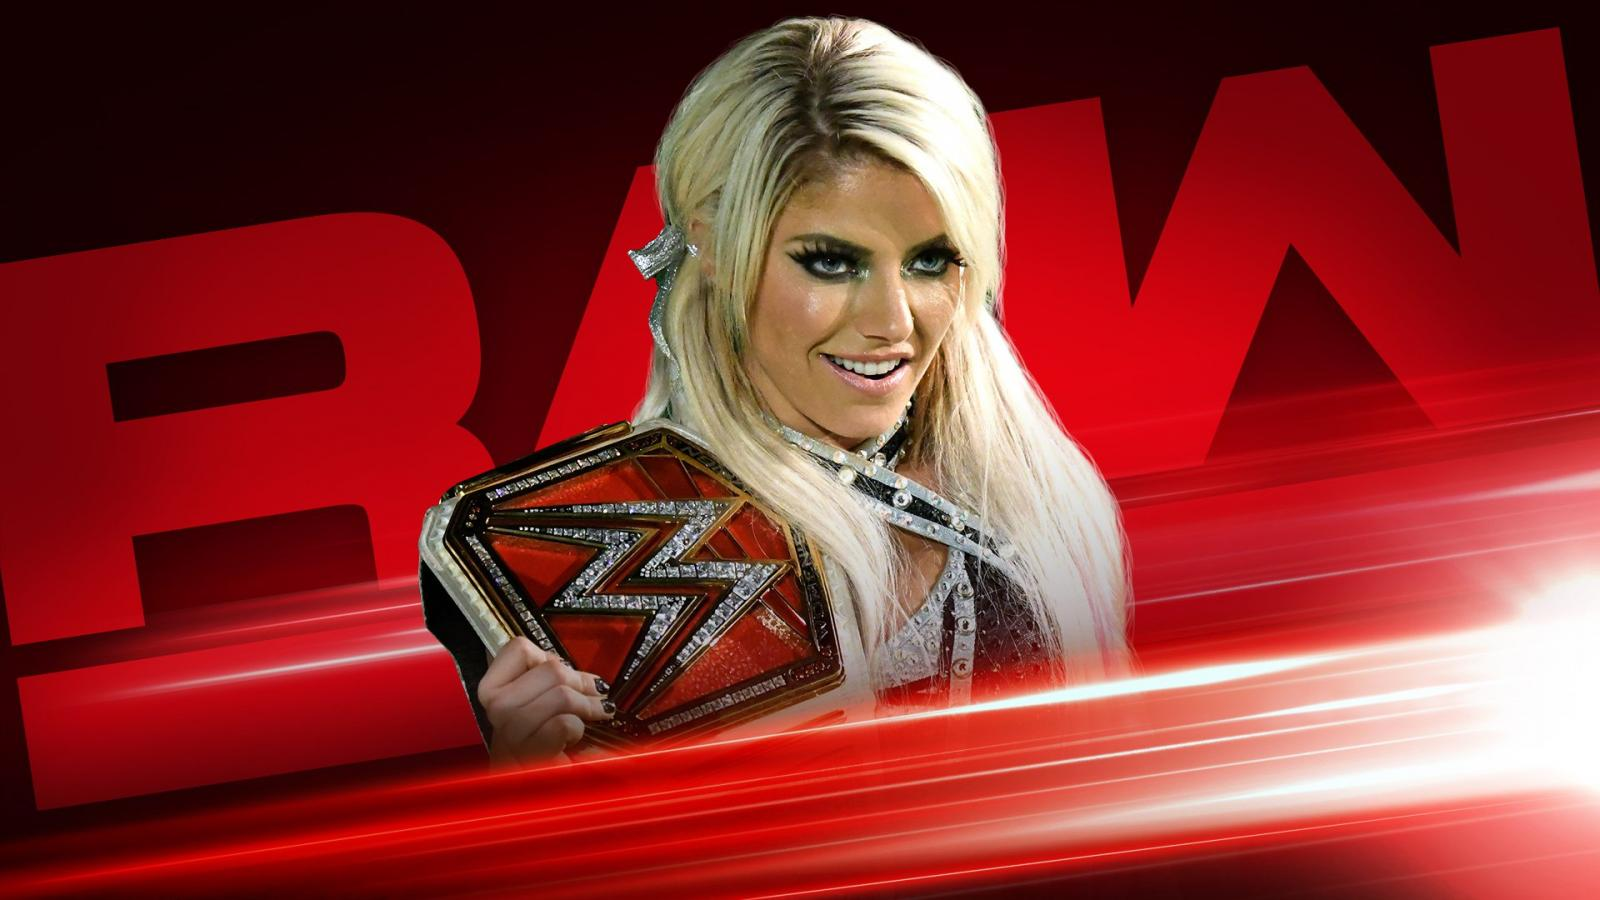 Praise and glory to the NEW Raw Women's Champion